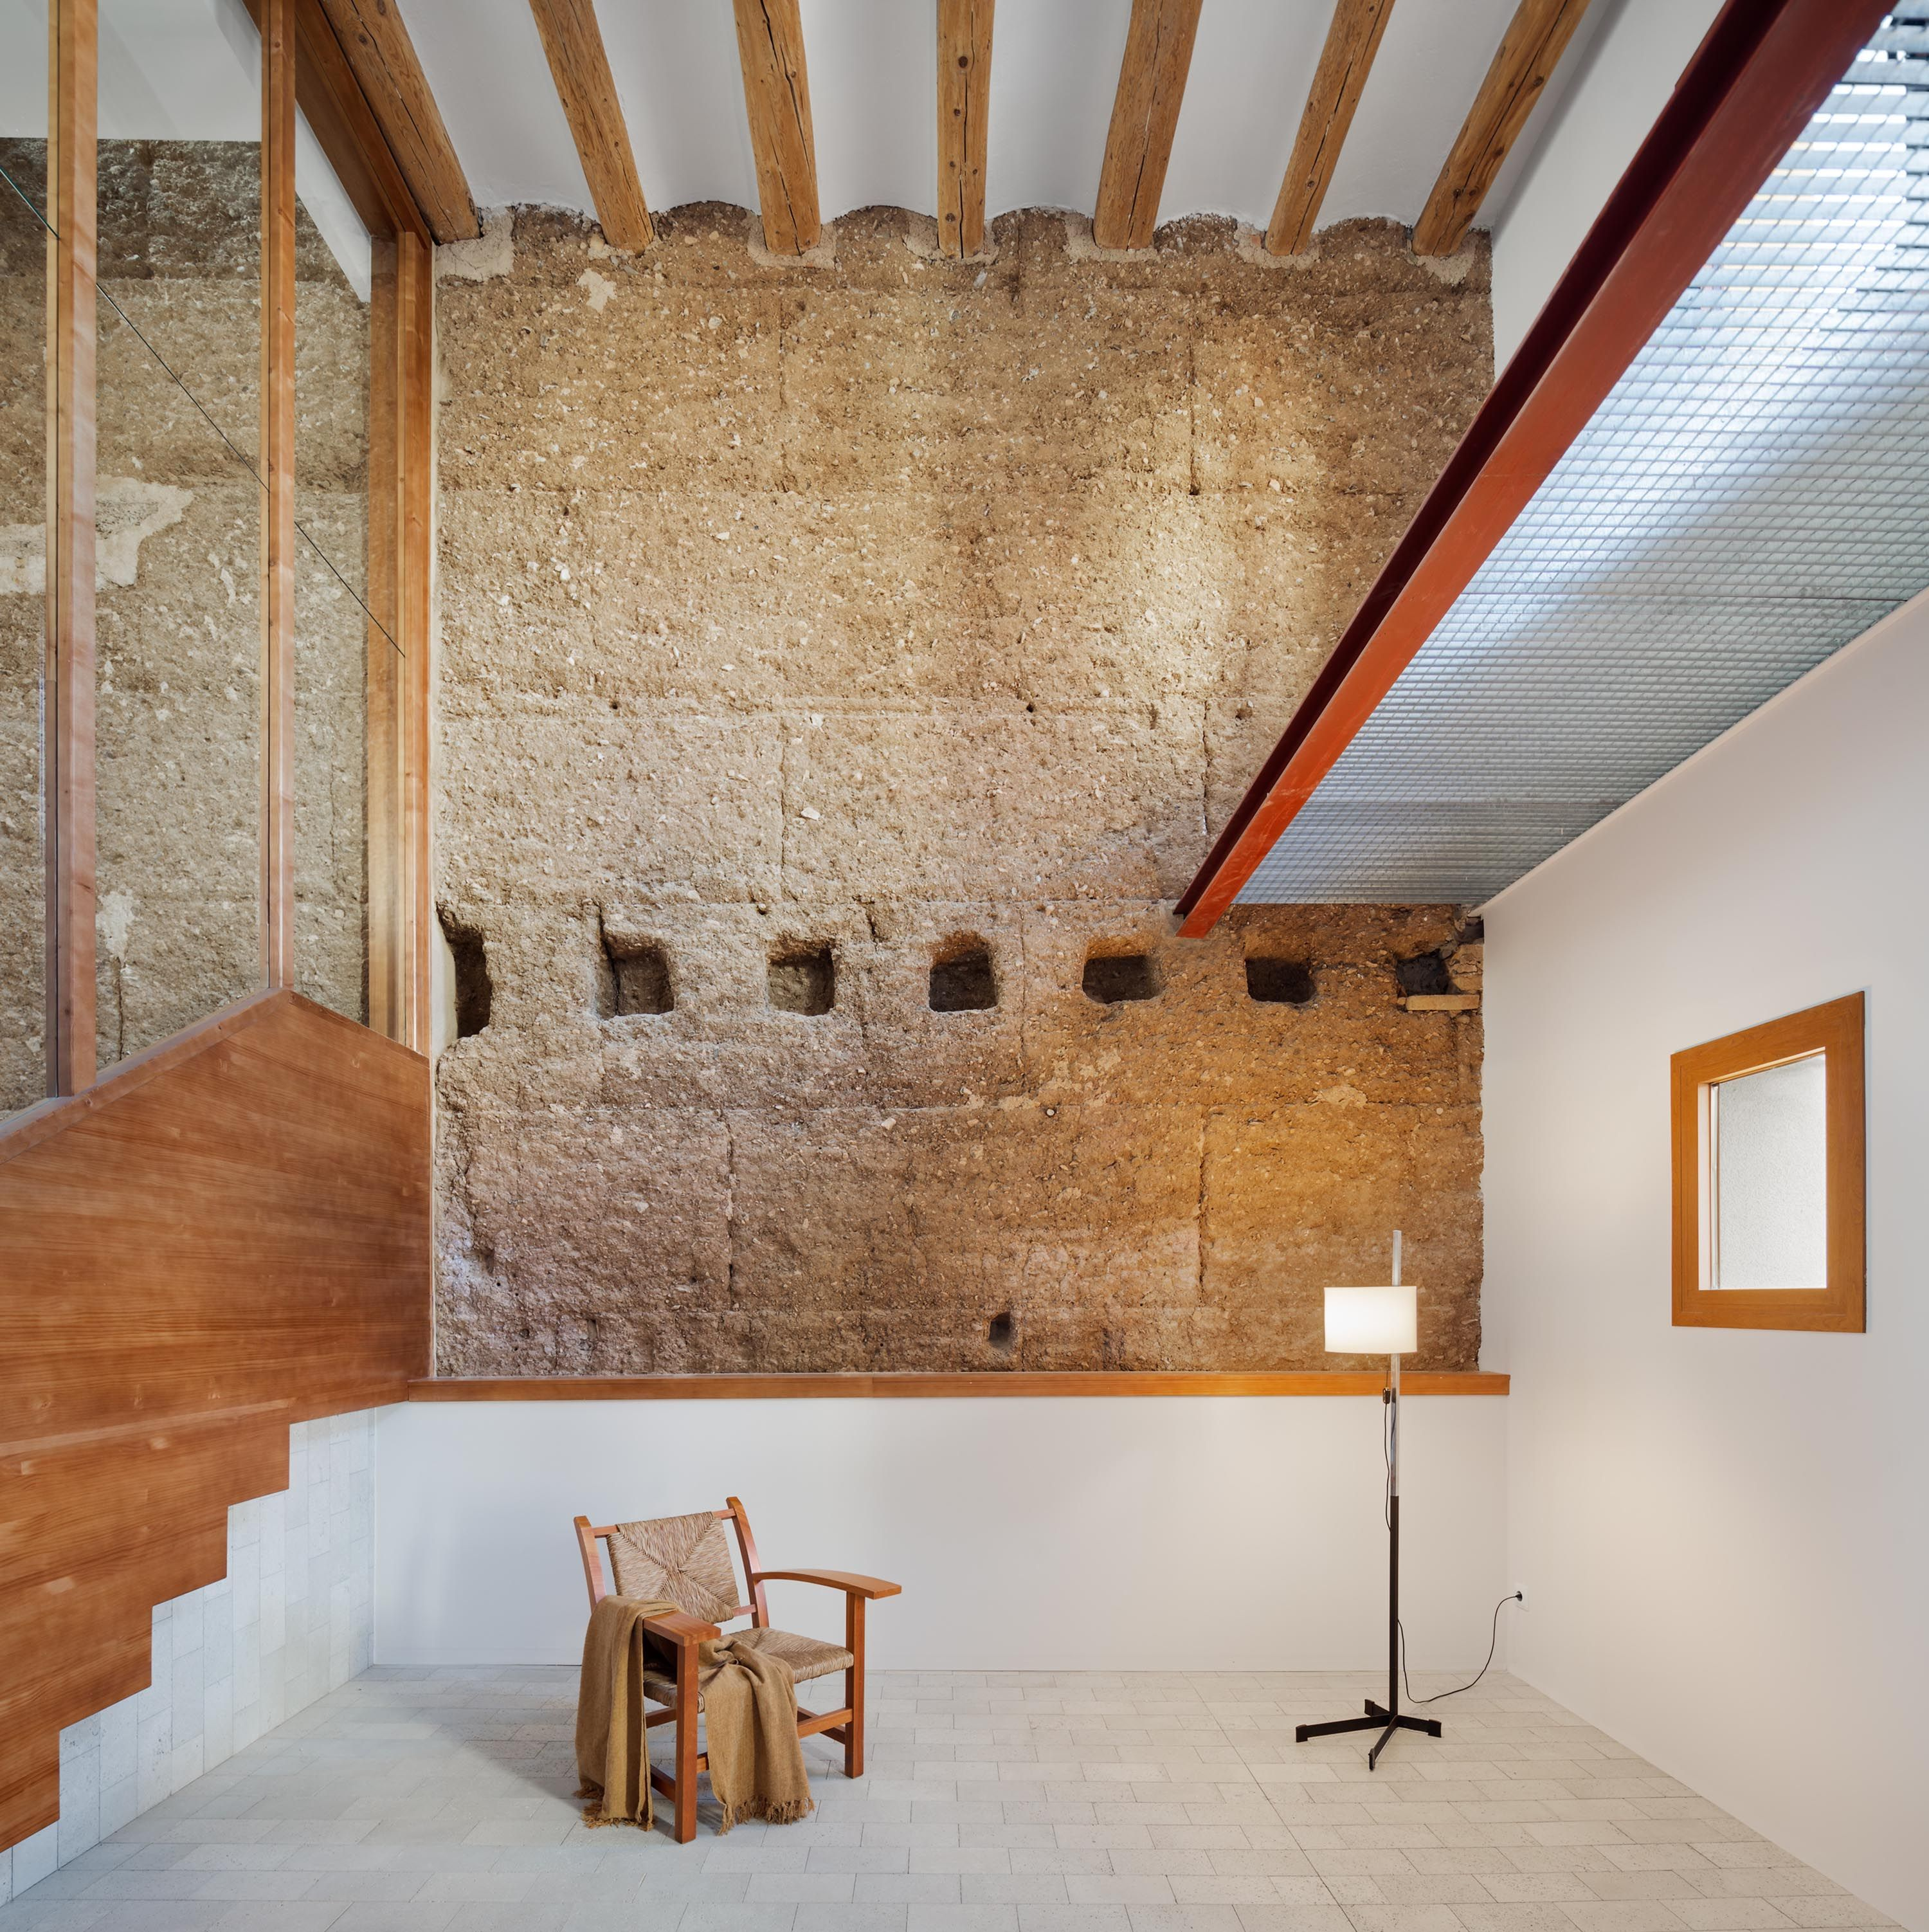 Rammed Earth Walls Rise to Enclose a Long and Narrow Home in Sunny Spain